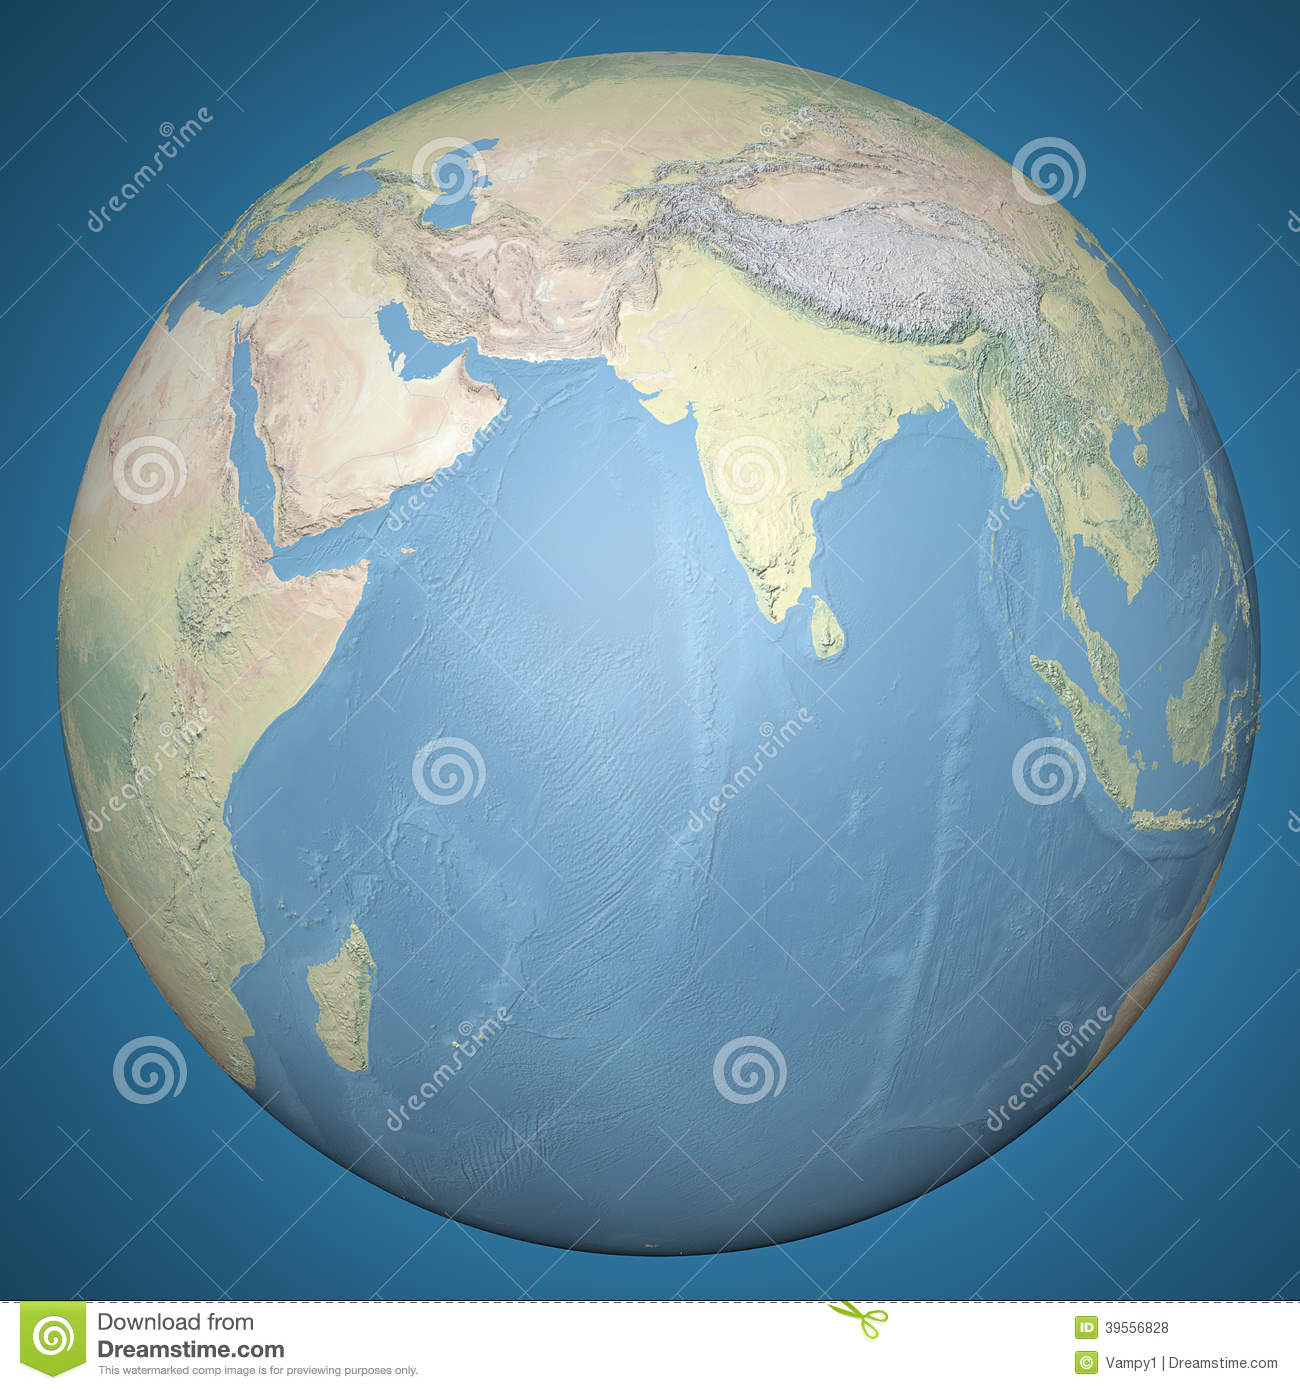 India On Globe Map Photo Image 31185200 – Globe Maps of the Earth